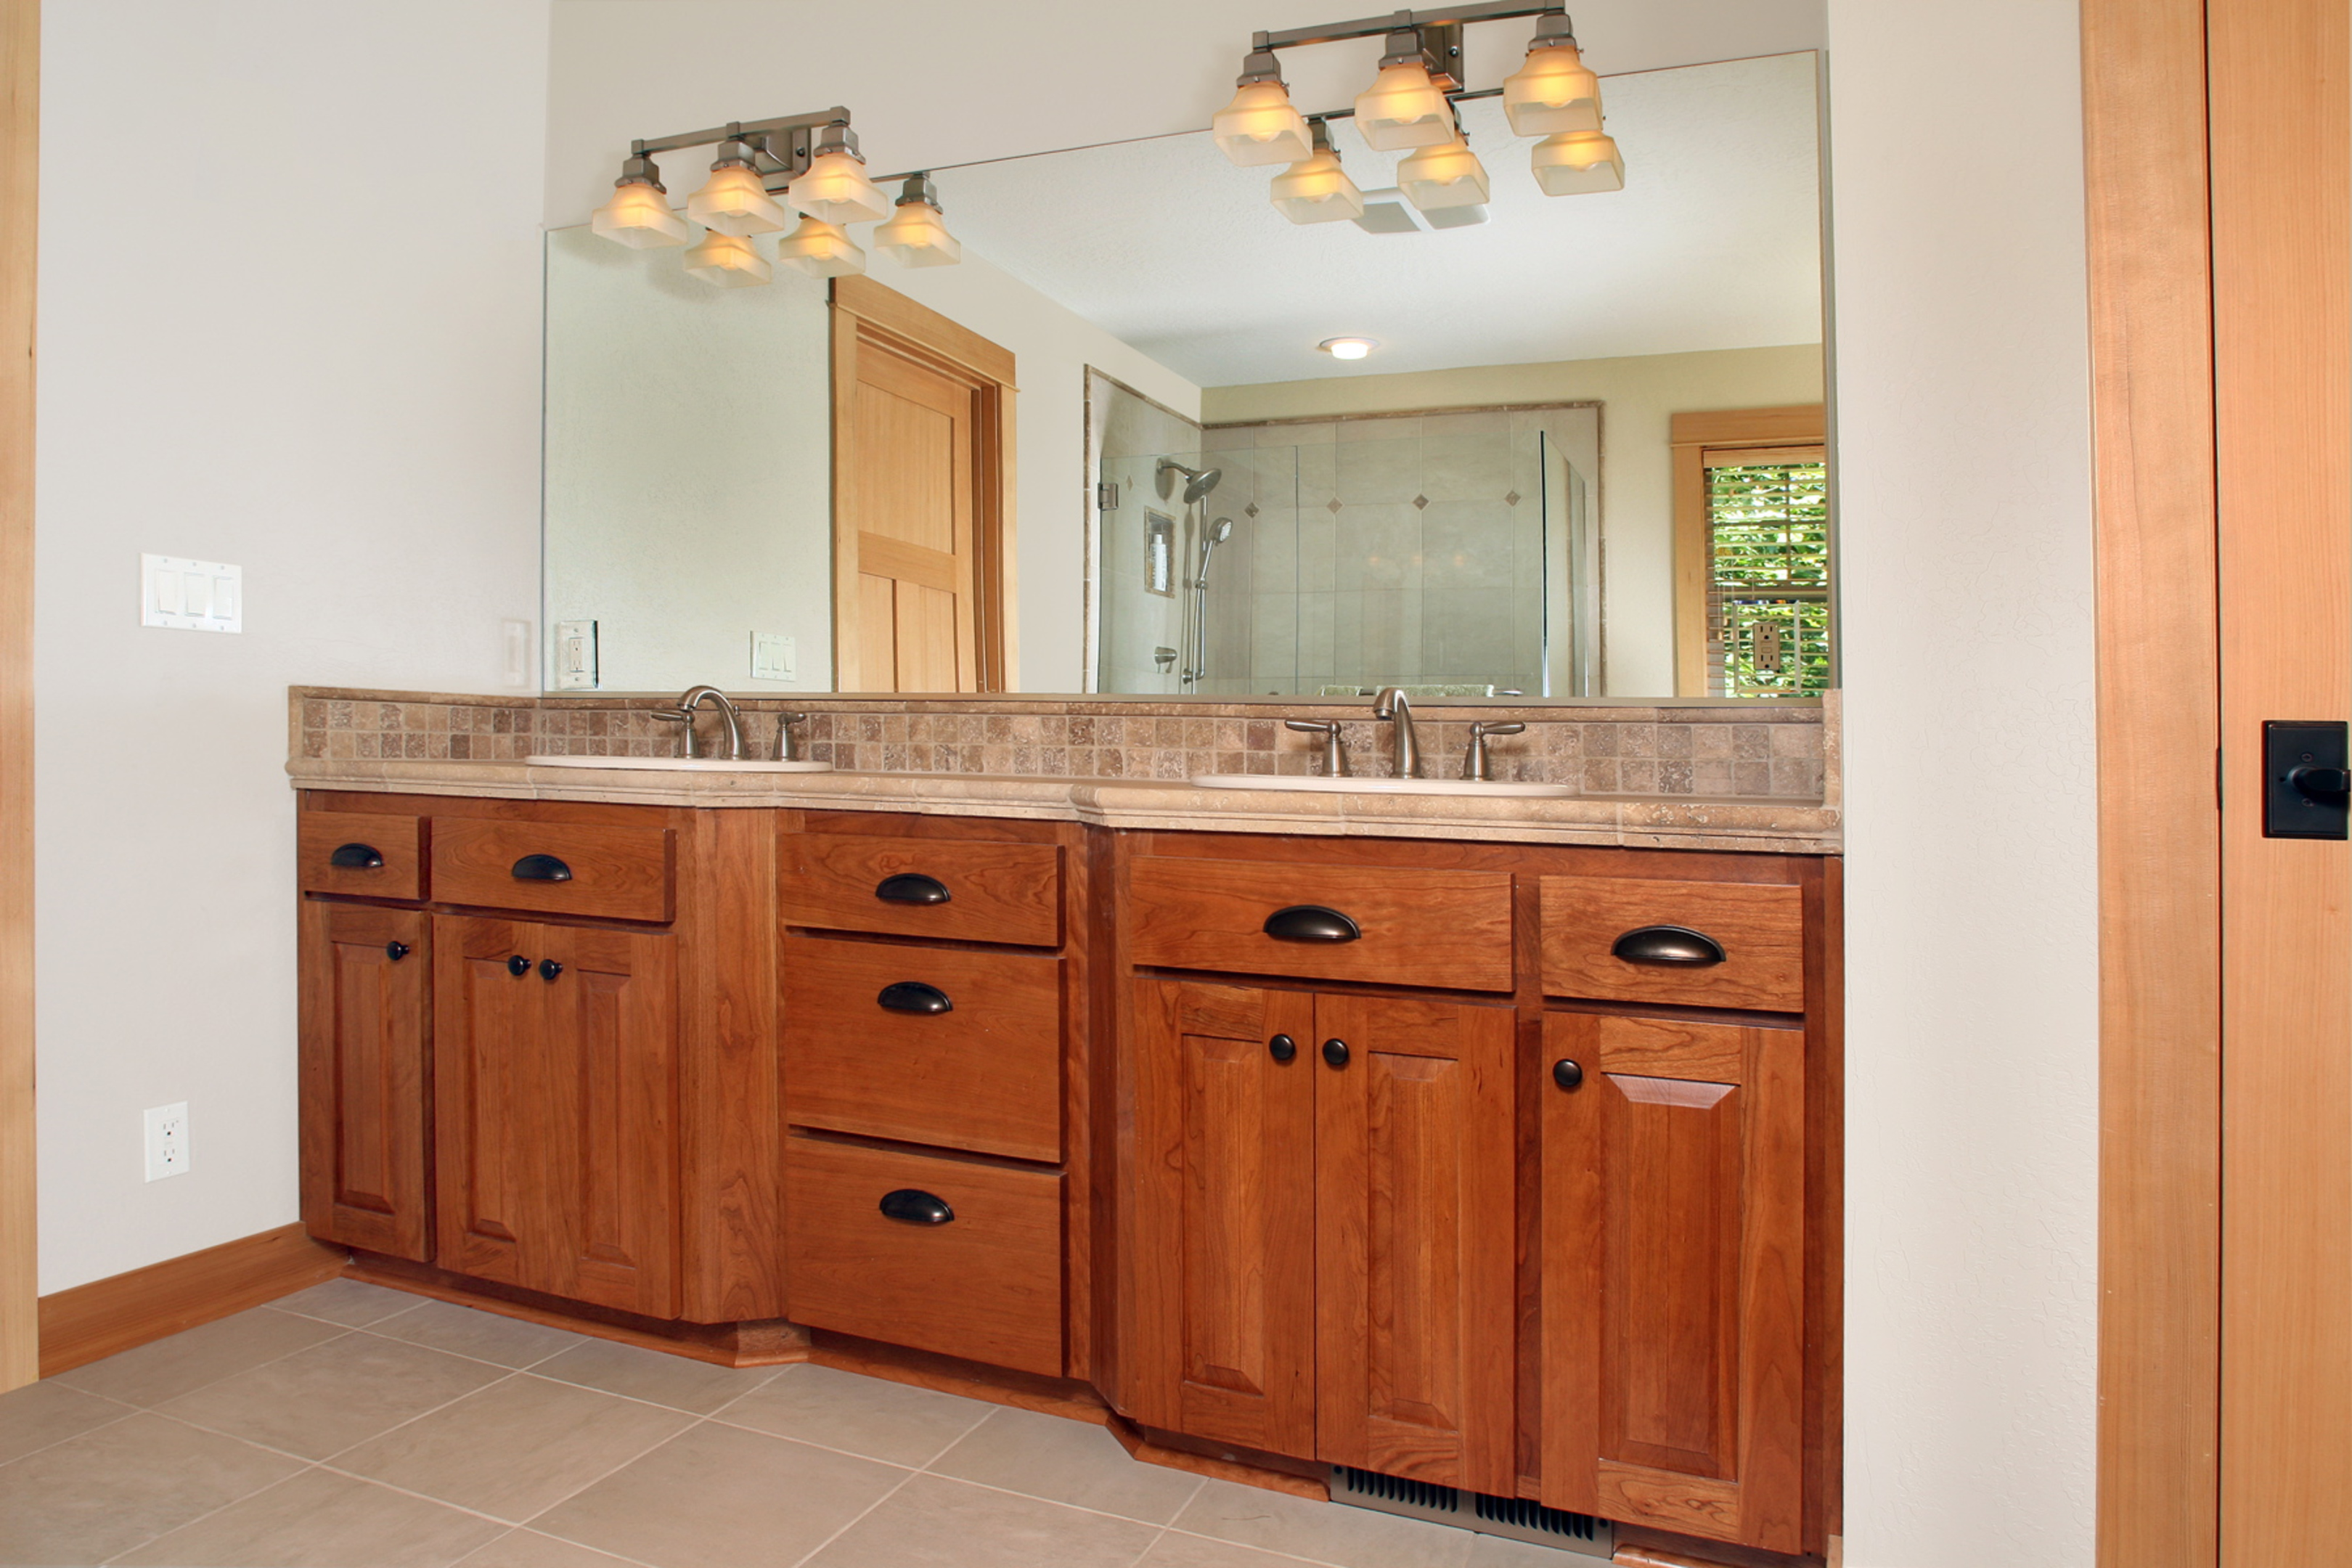 Craftsman Style Bathroom Wall Cabinets : Cherry bathroom wall cabinet atlanta styles deebonk